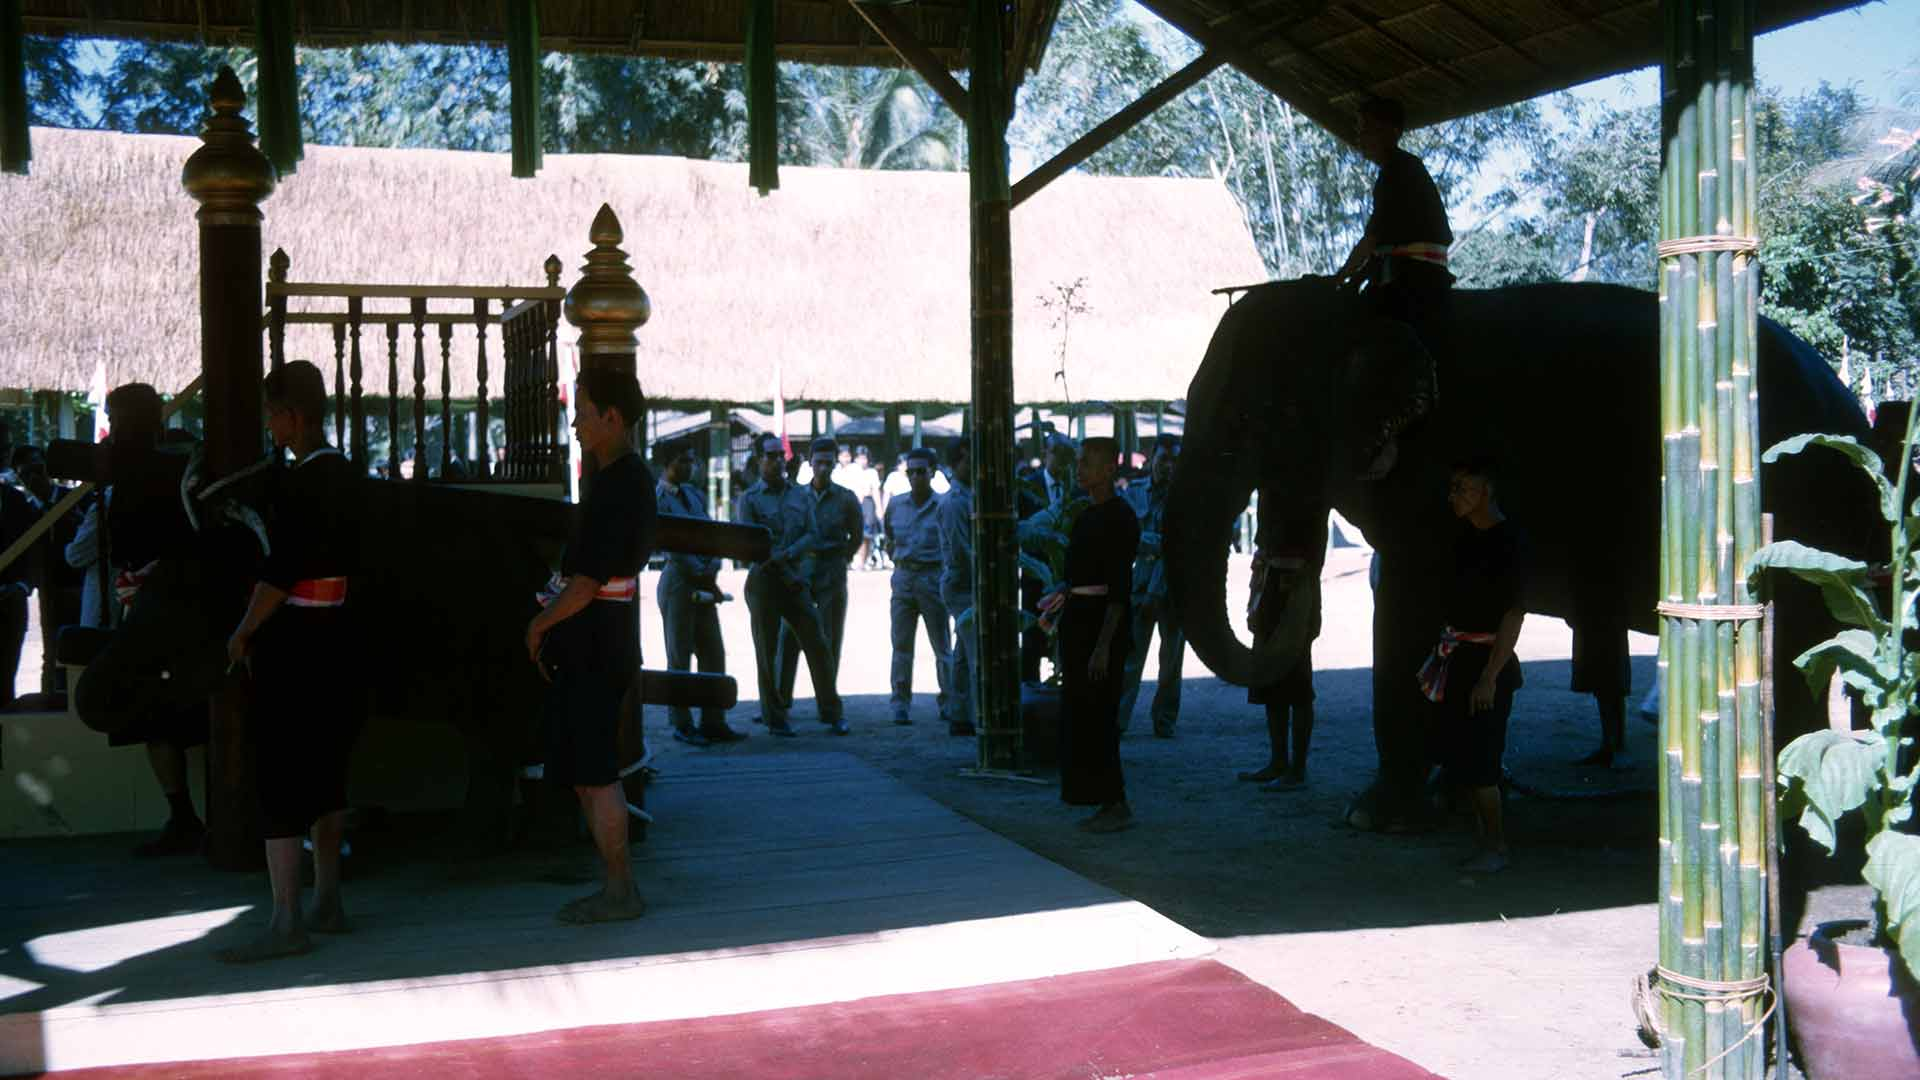 The elephant approaches the special stand built under the open-air structure